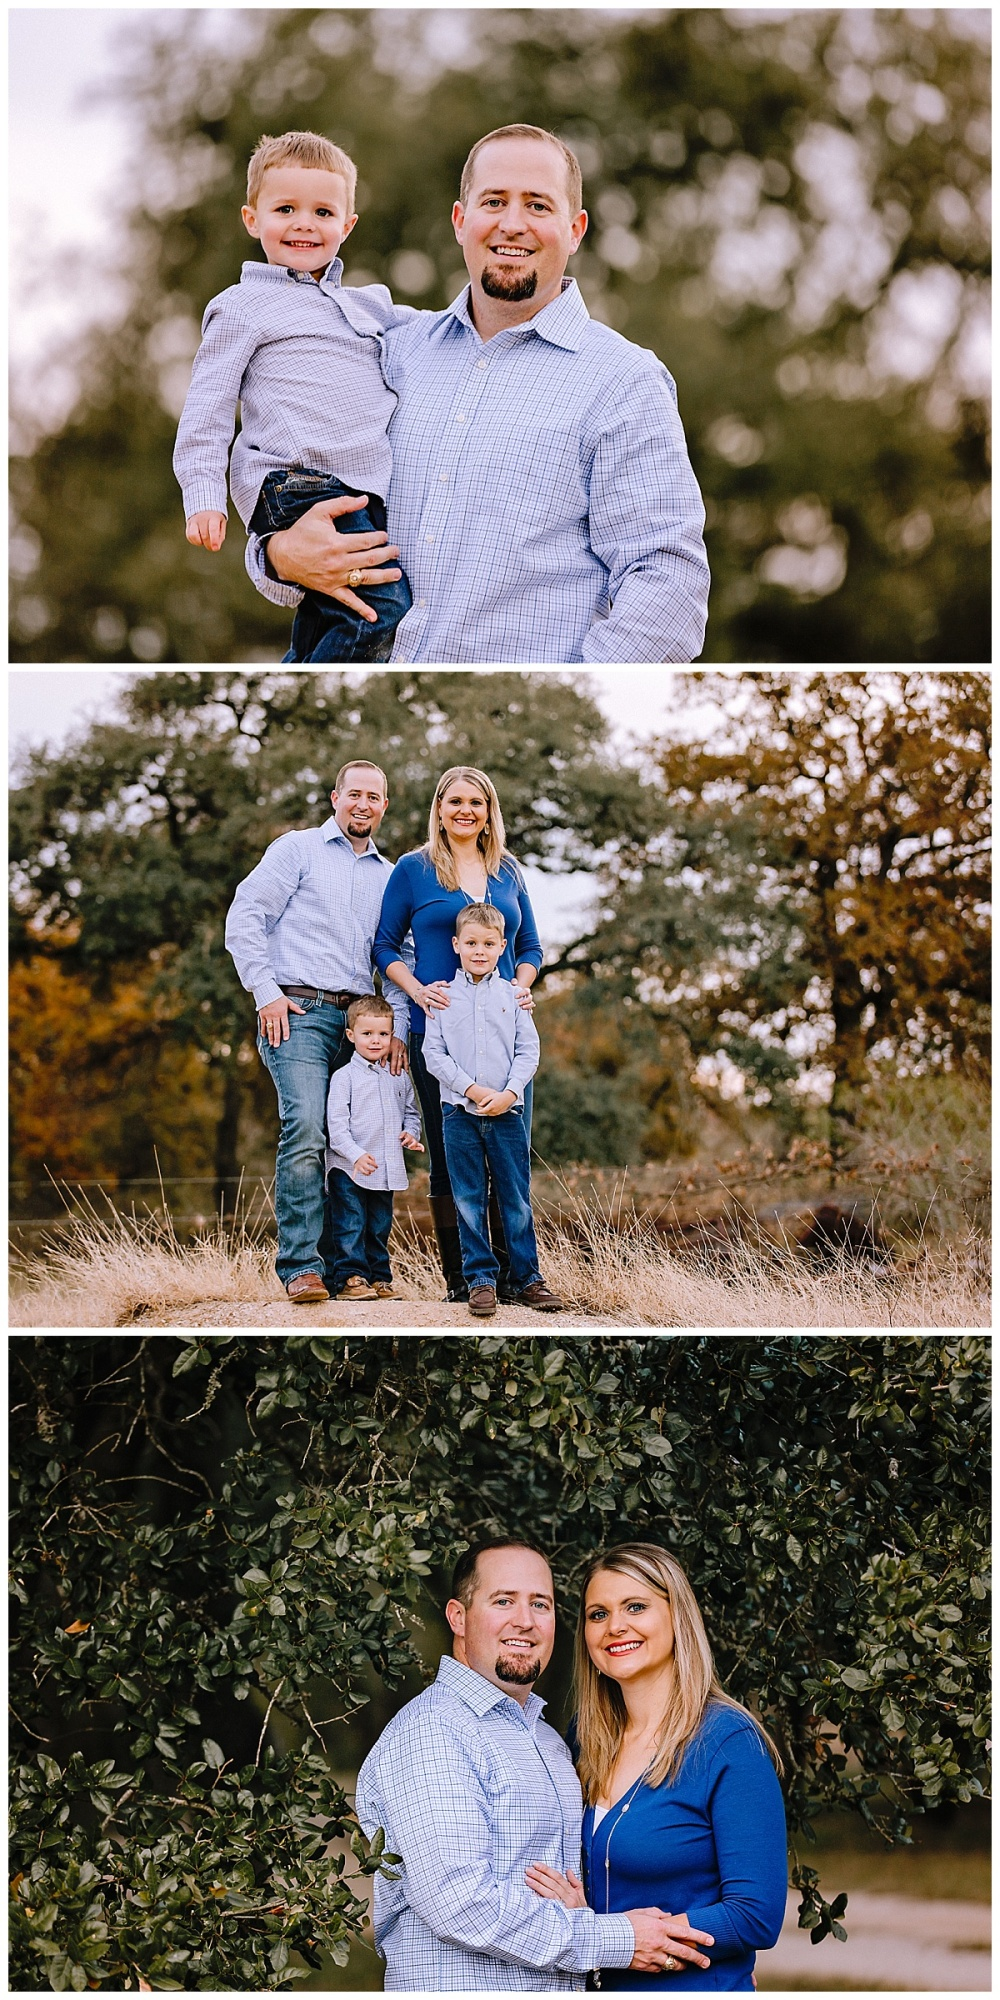 Family-Photographer-La-Vernia-Texas-LV-C-of-C-Hall-Fall-Photos-Brothers-Carly-Barton-Photography_0011.jpg